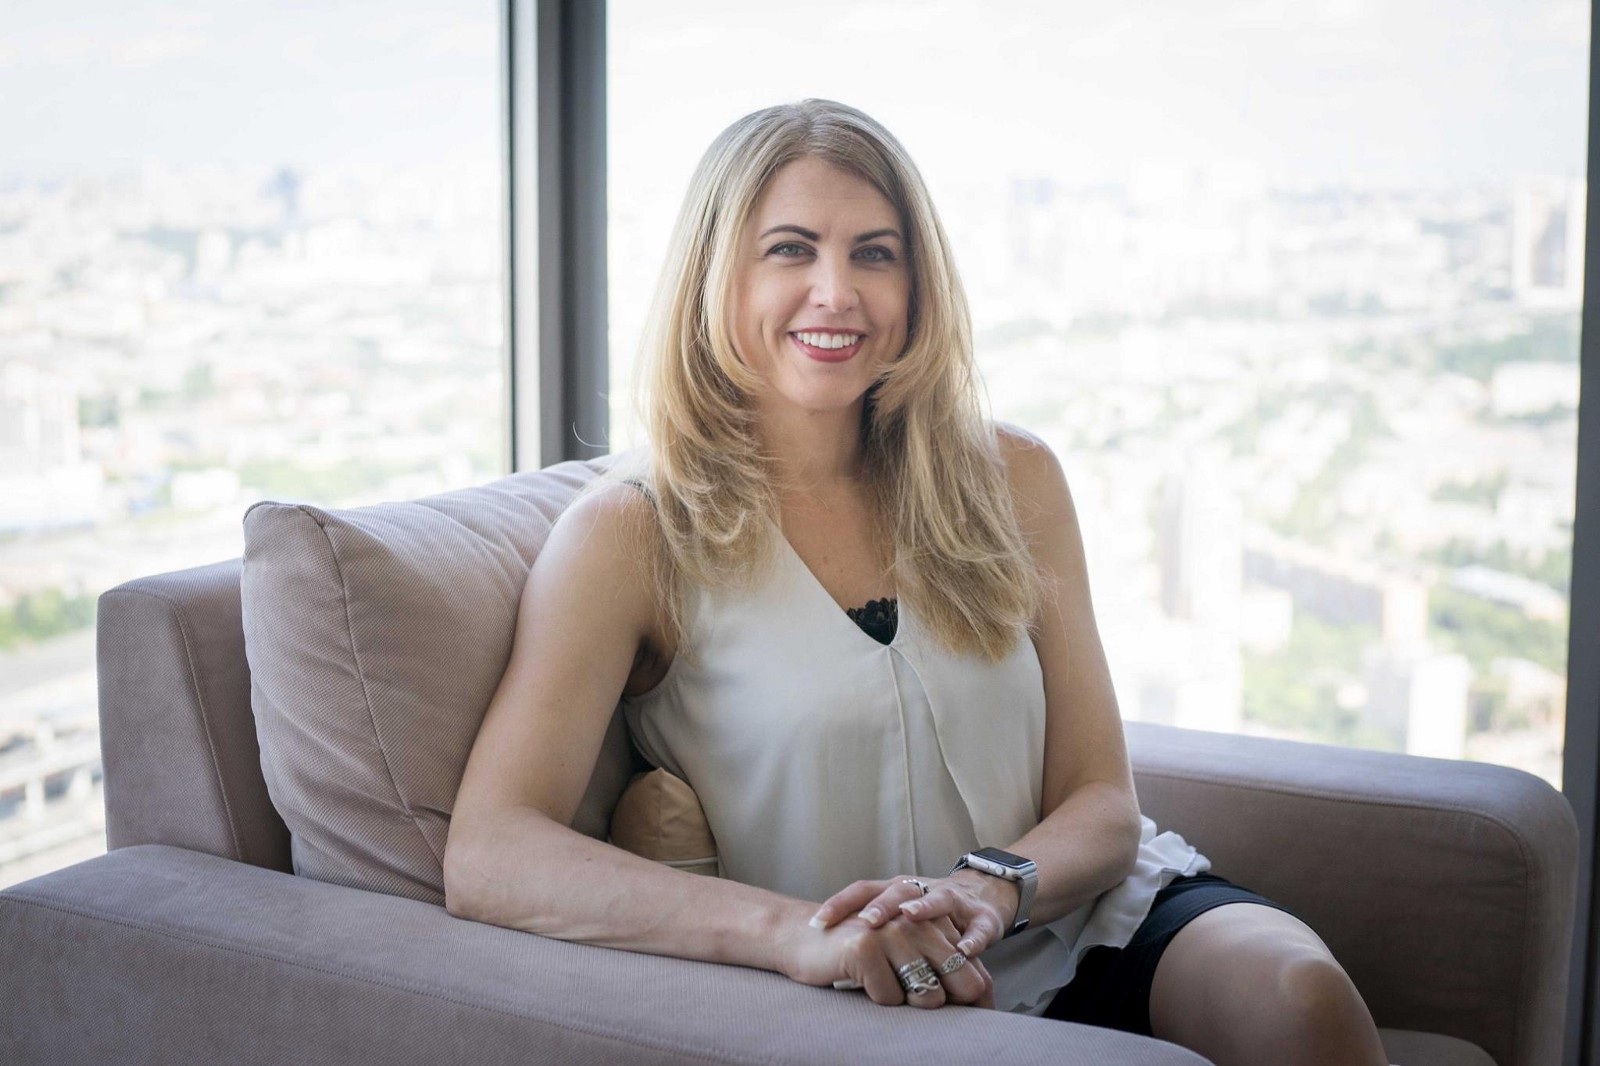 Interview with Liz Parrish, CEO of BioViva